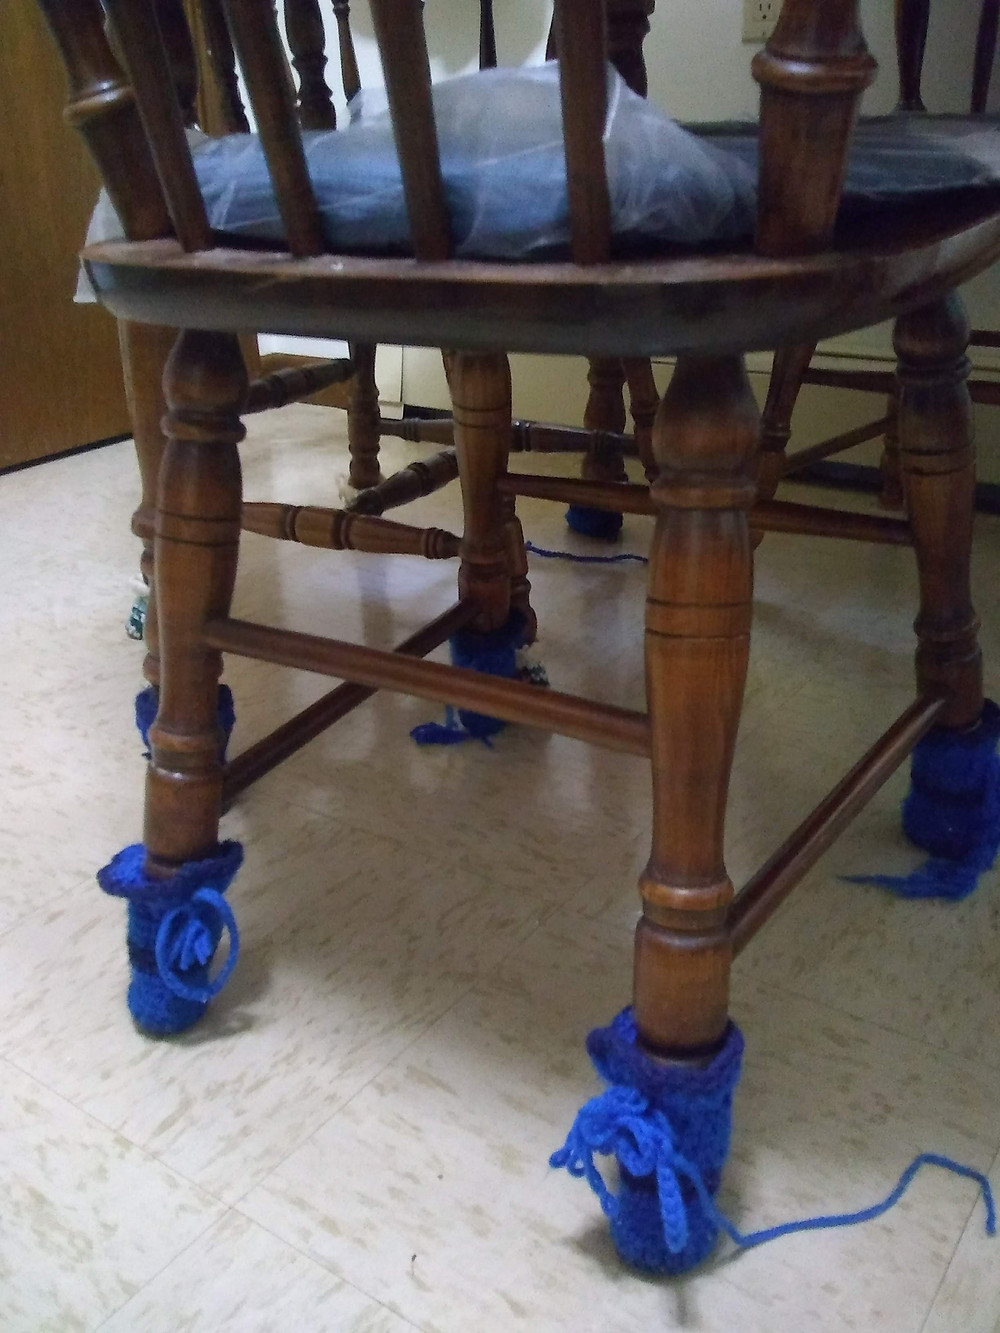 A photo of Theresa's hand-knit blue chair leg booties with light blue bows in her kitchen.